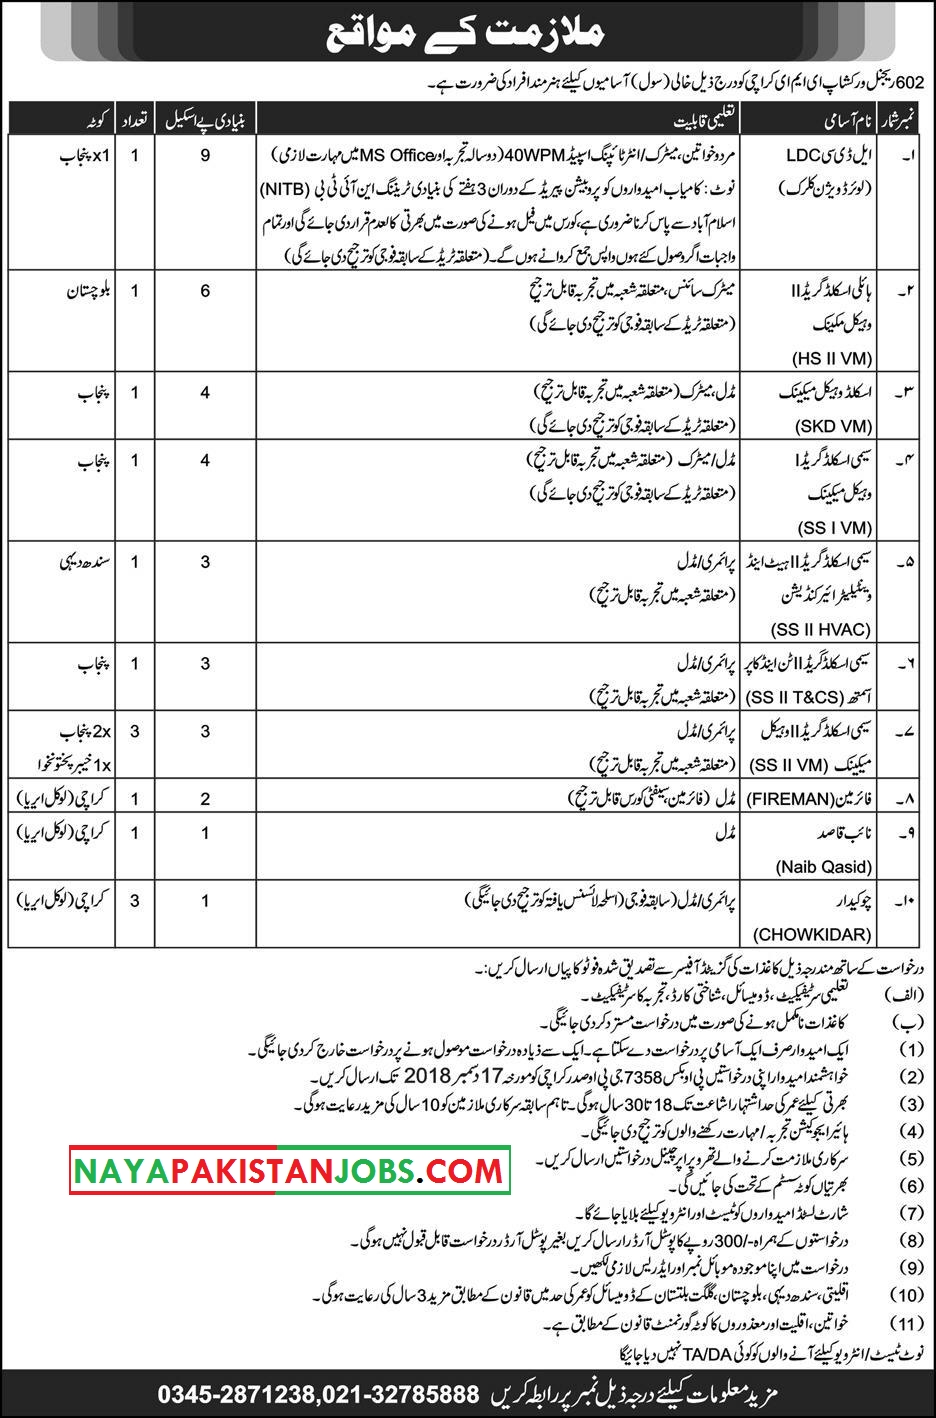 Latest Vacancies Announced in Pakistan Army at 602 Regional Workshop EME Karachi 2 December 2018 - Naya Pakistan